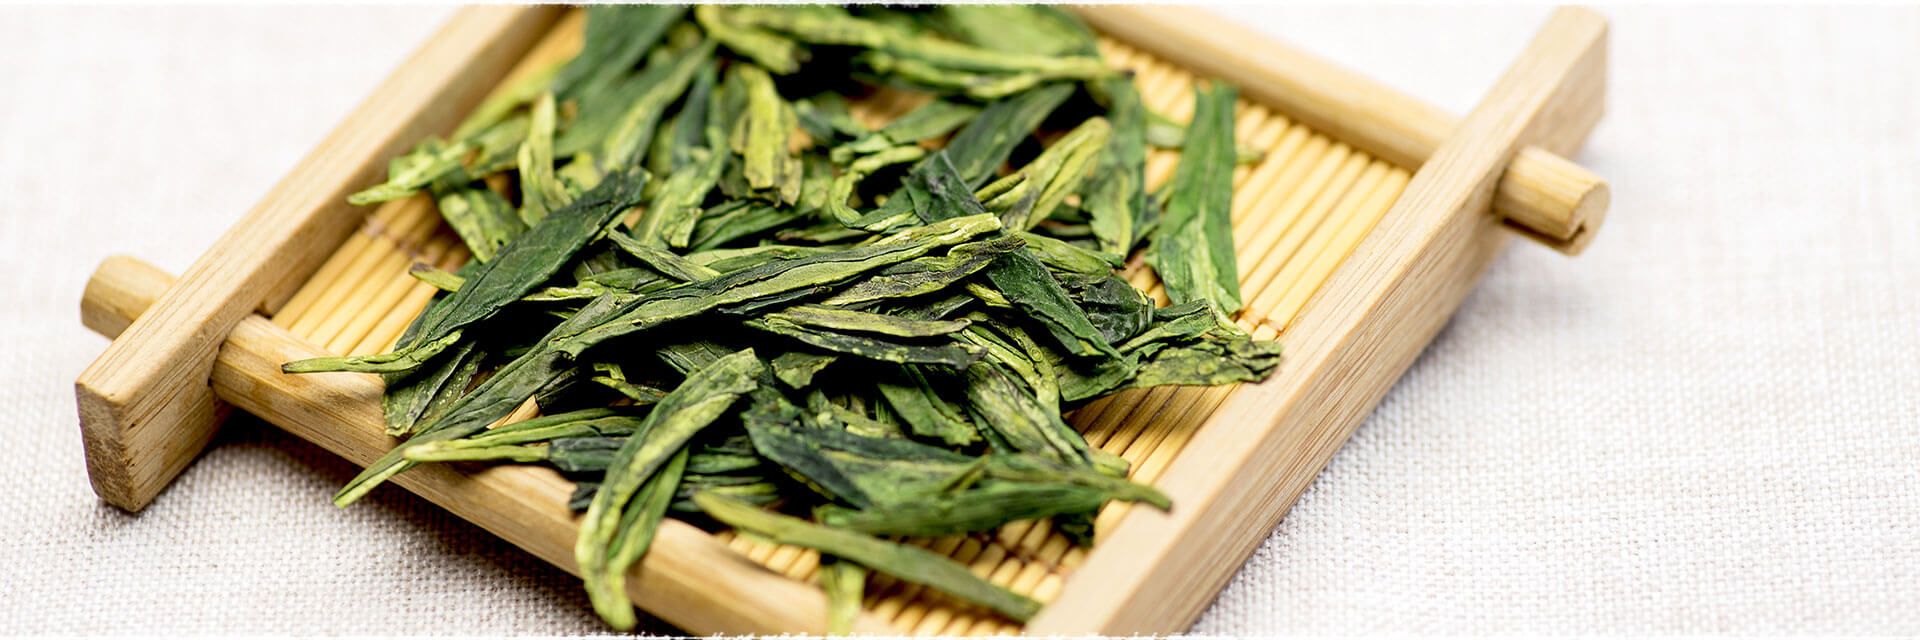 The comparisons between Jiangsu spring tea and Zhejiang spring tea